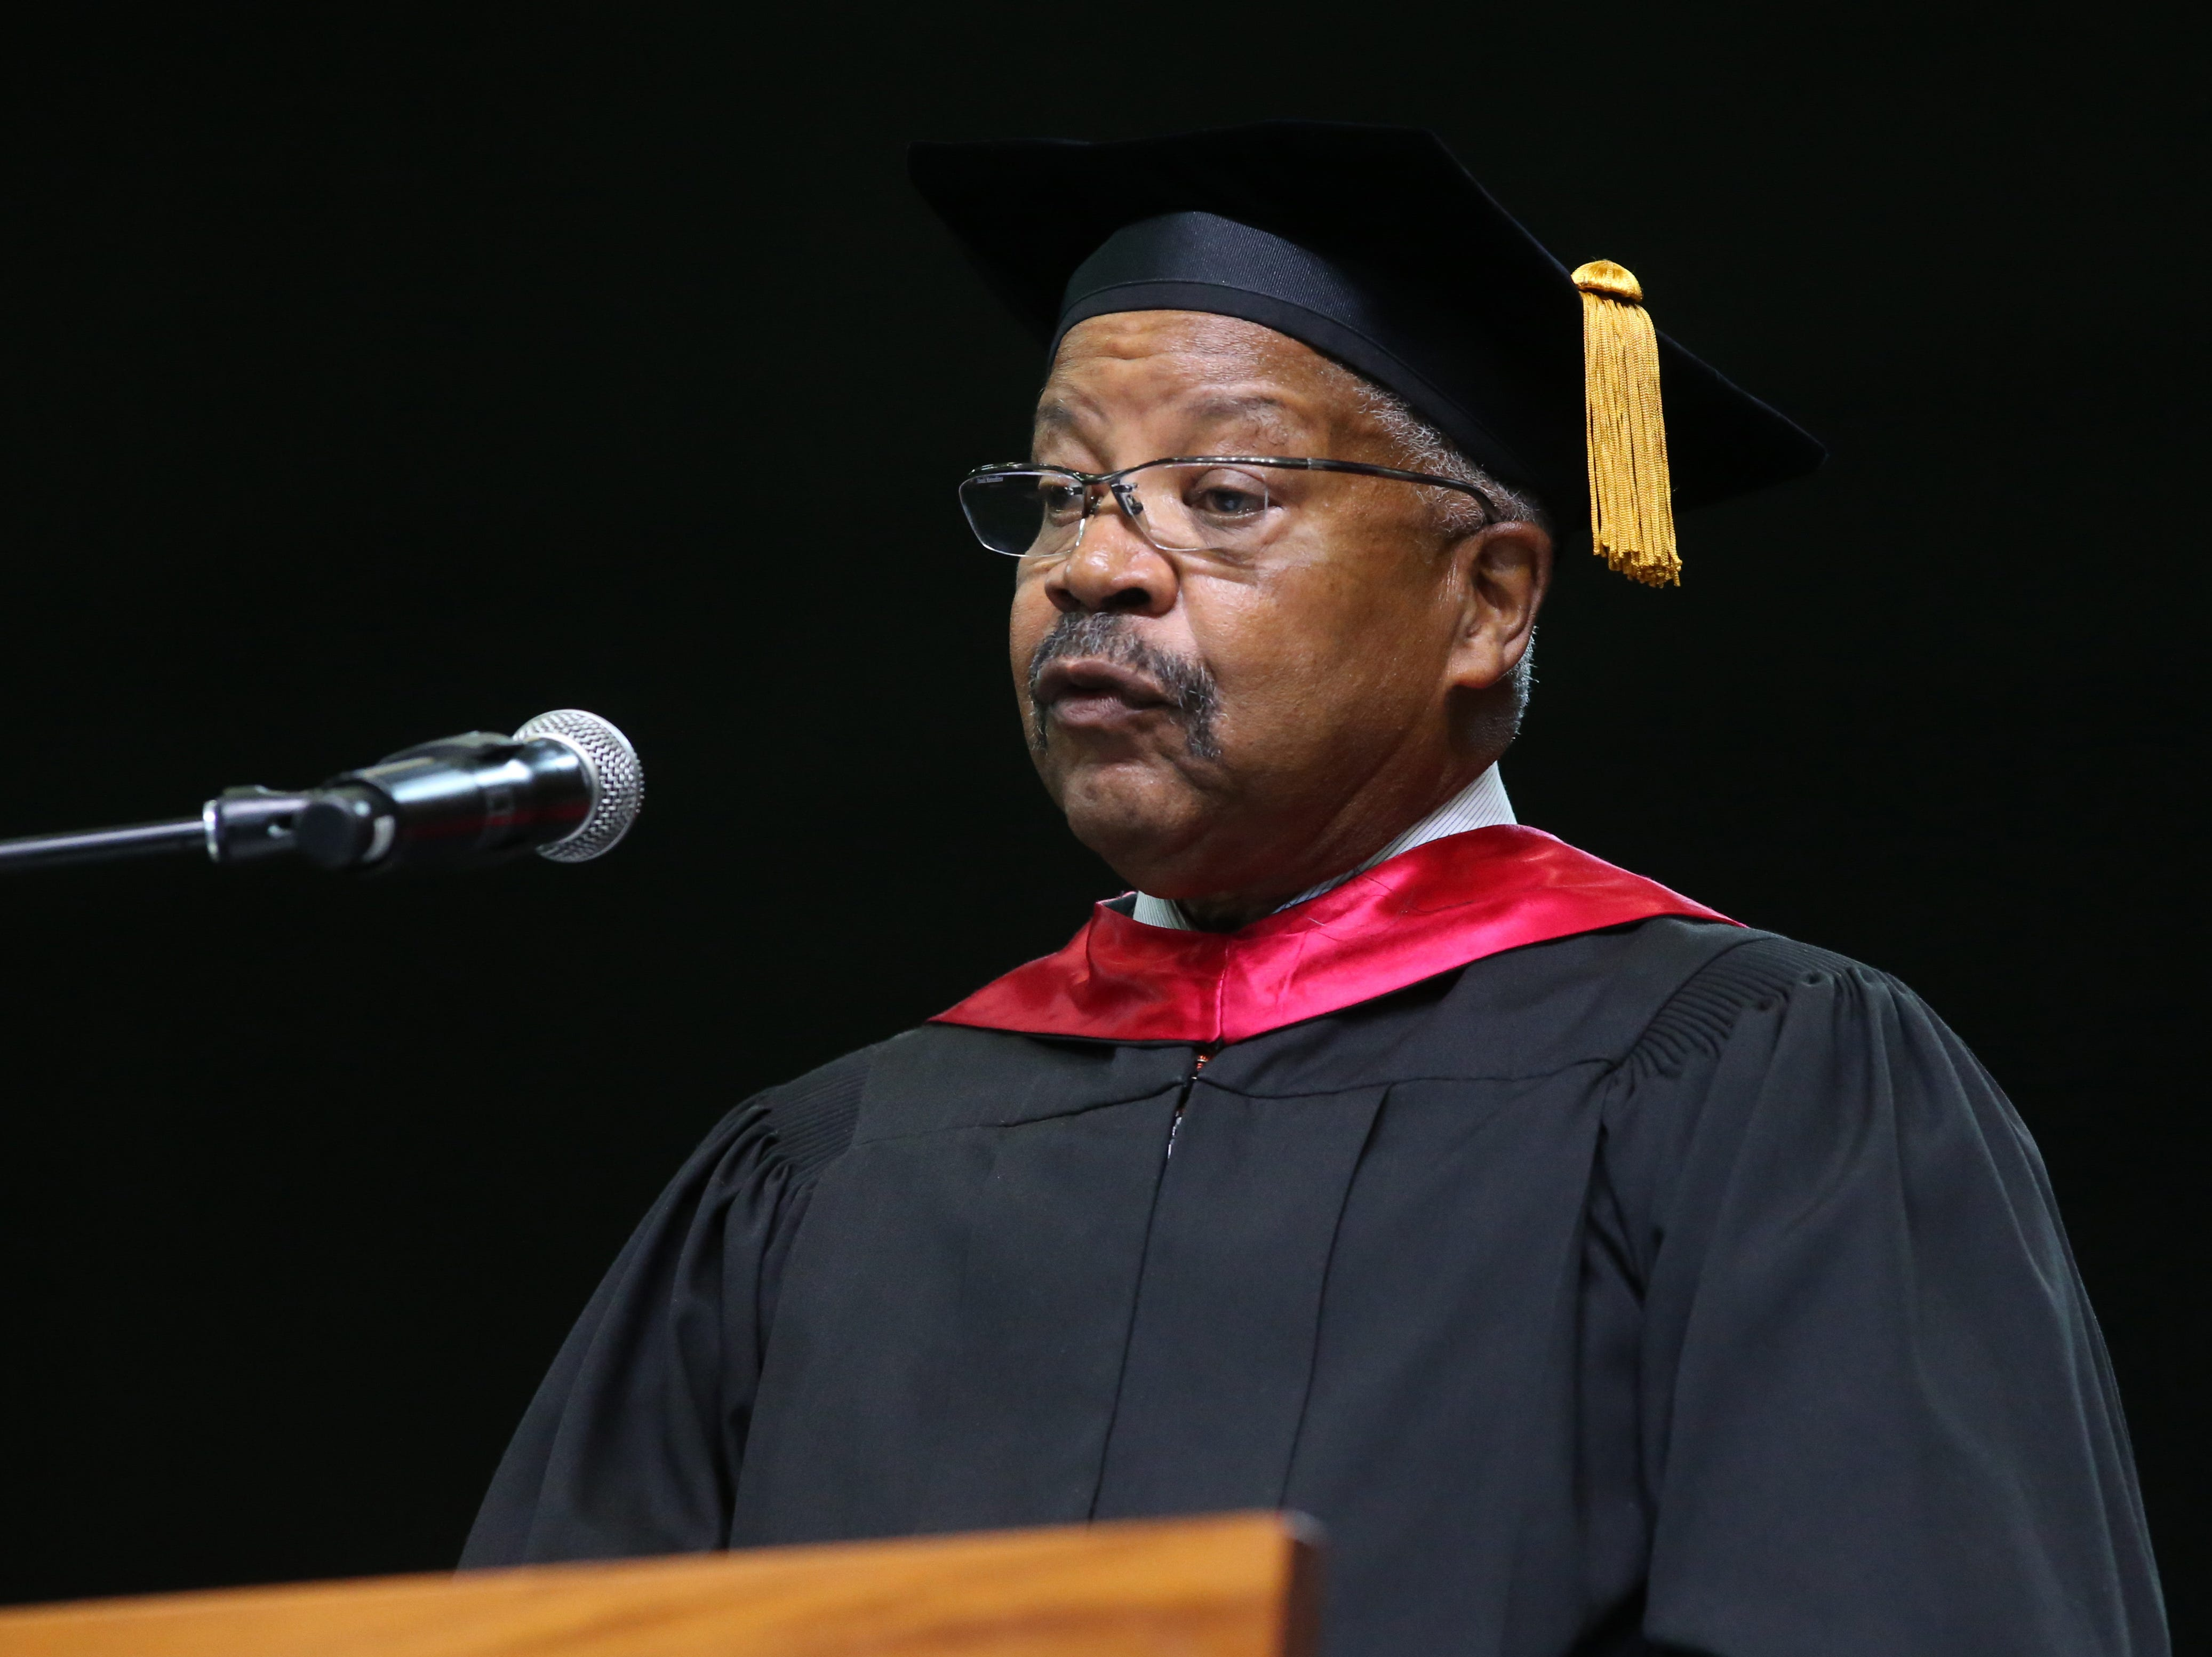 Rodner B. Wright give the introduction for FAMU President Larry Robinson at the 2018 Presidents' Inauguration held in the Lawson Center on Friday, Nov. 9, 2018.